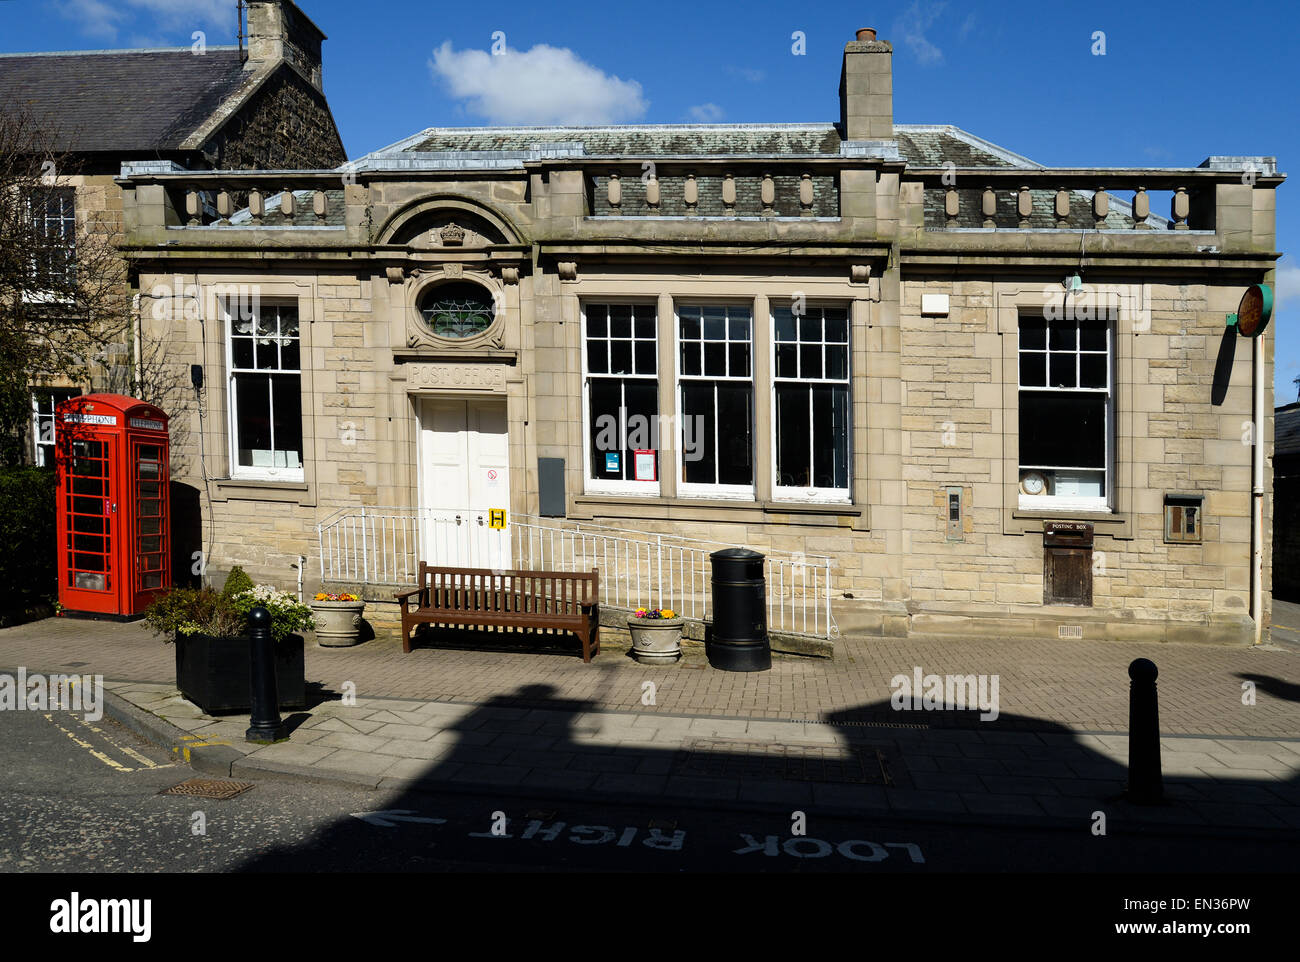 Melrose Post Office, opened in 1901 - Stock Image